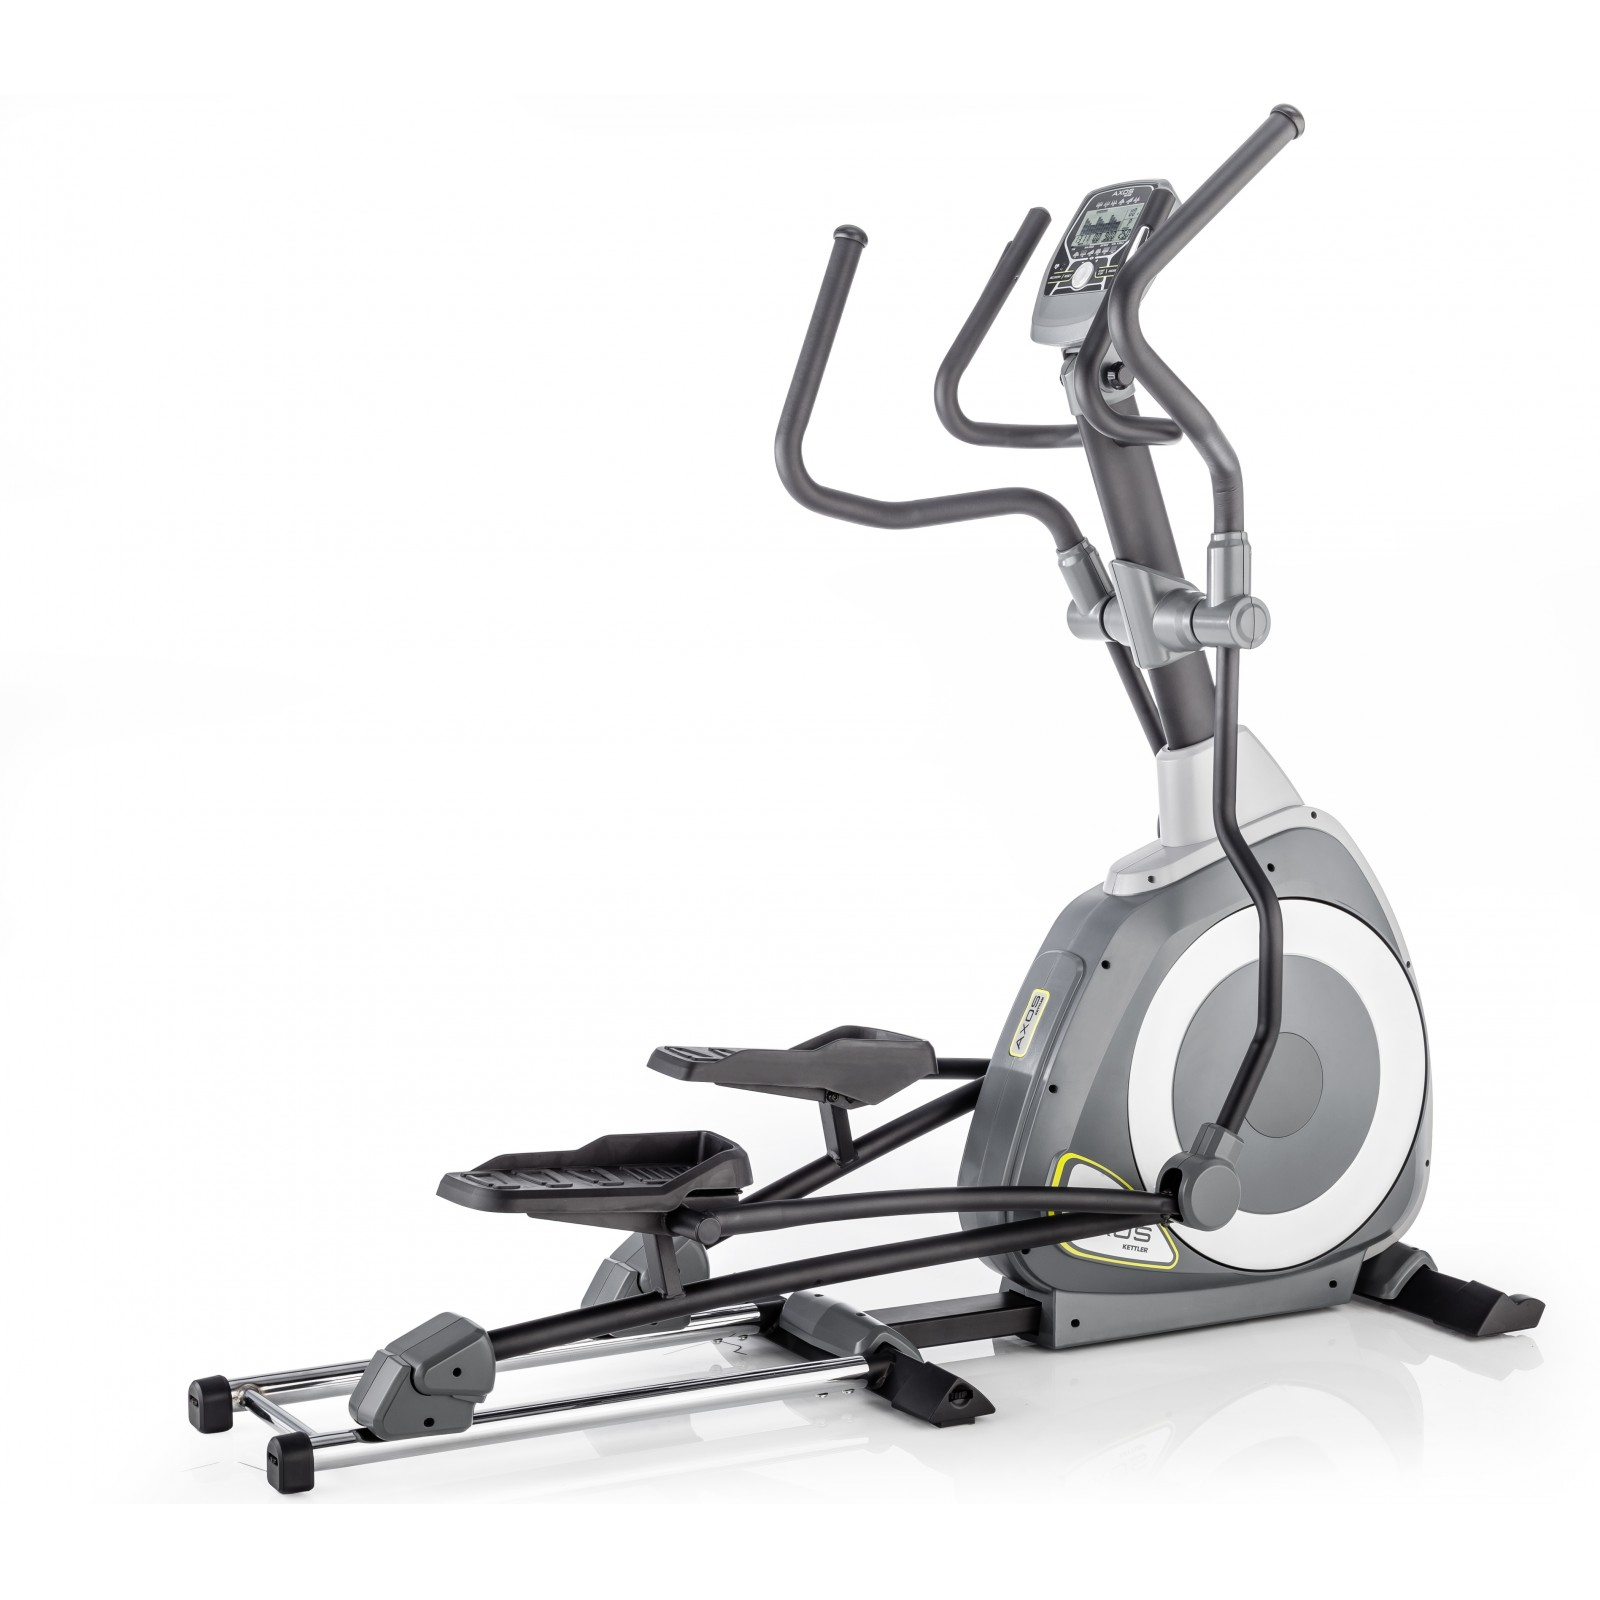 Kettler Fitness Kettler Elliptical Cross Trainer Axos P